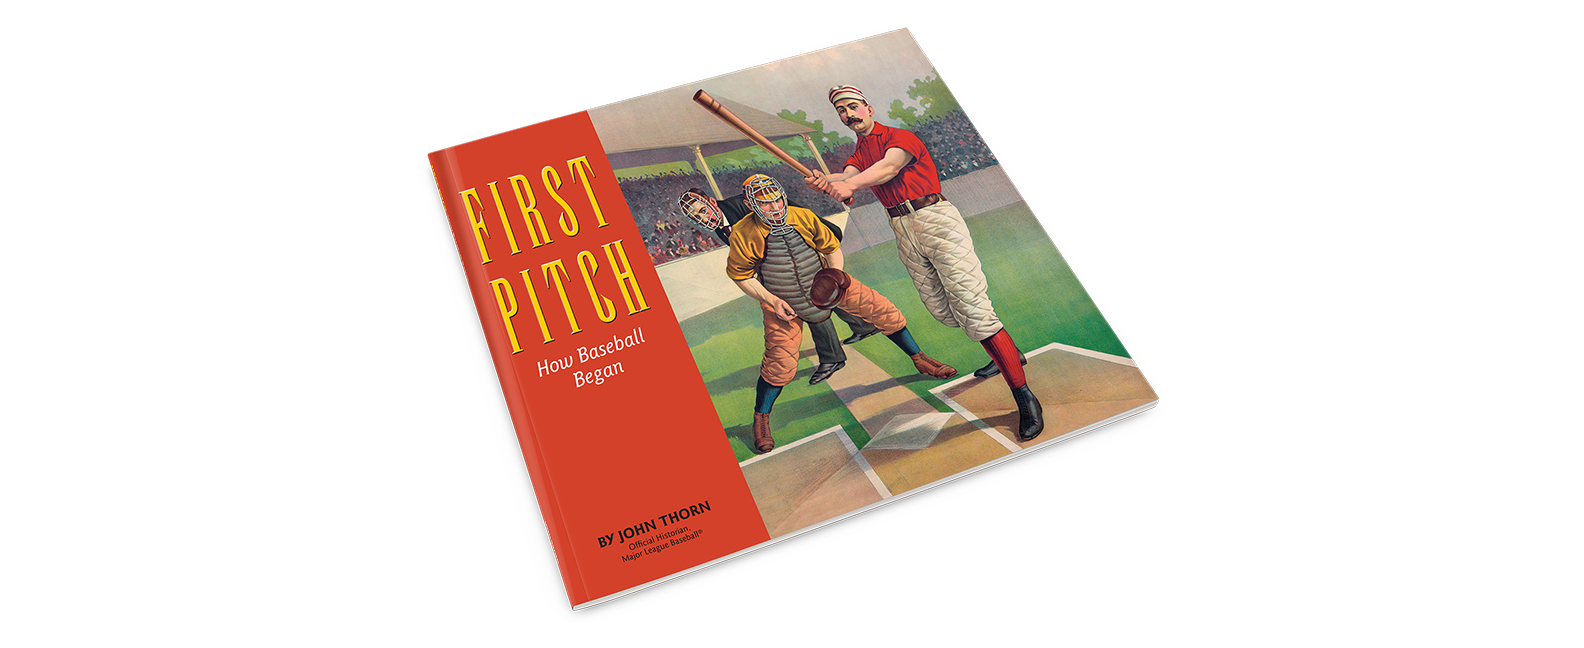 first-pitch-children's-trade-nonfiction-book-cover-2b.png